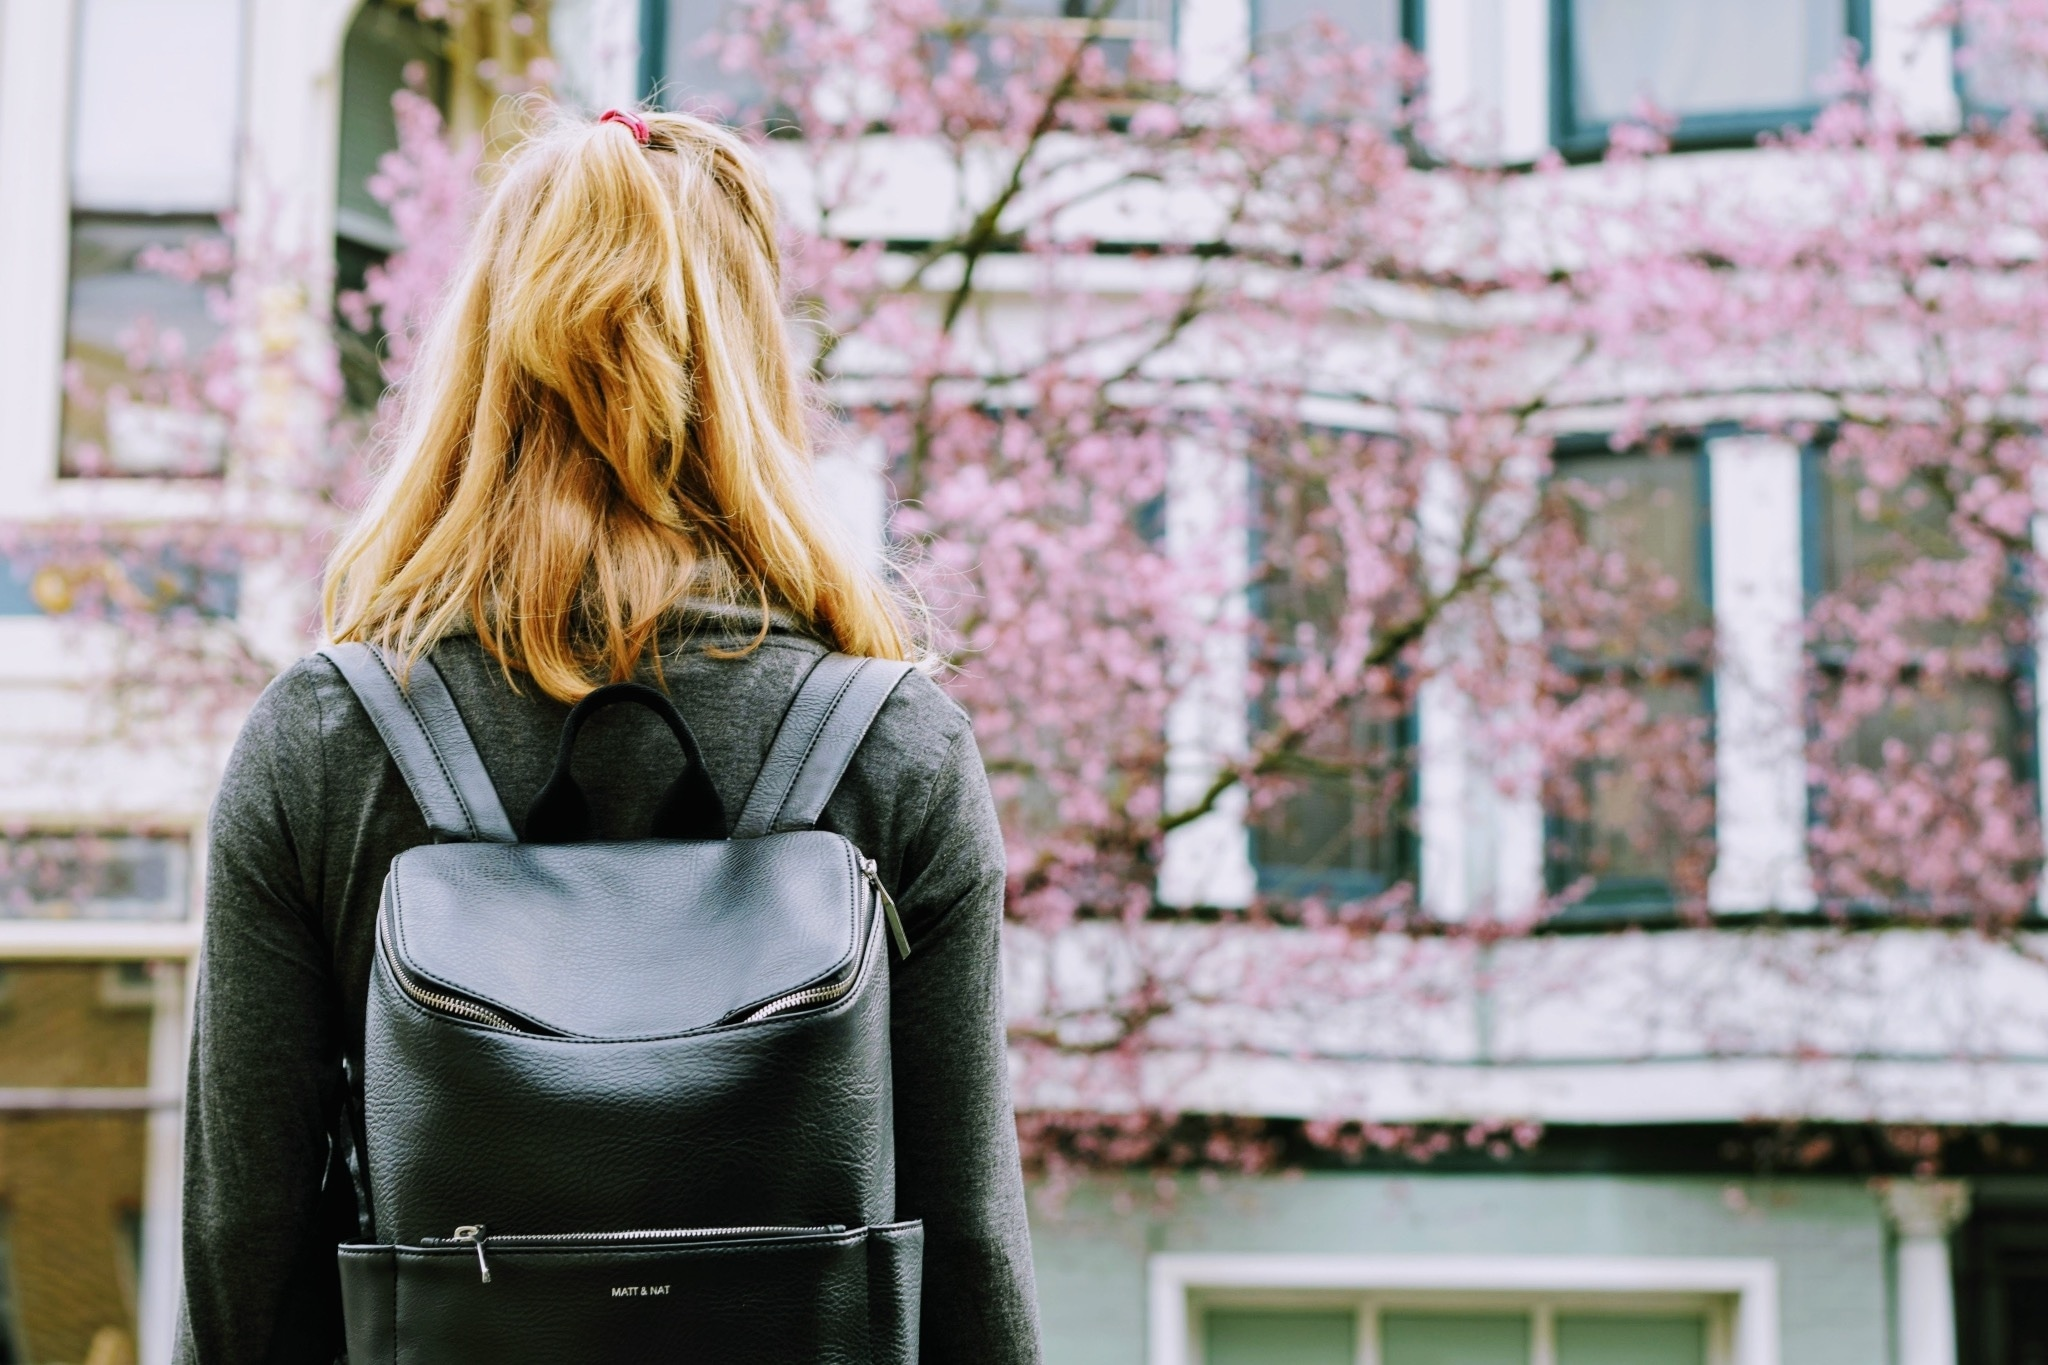 12 Stylish Women's Travel Backpacks with Anti-Theft Features